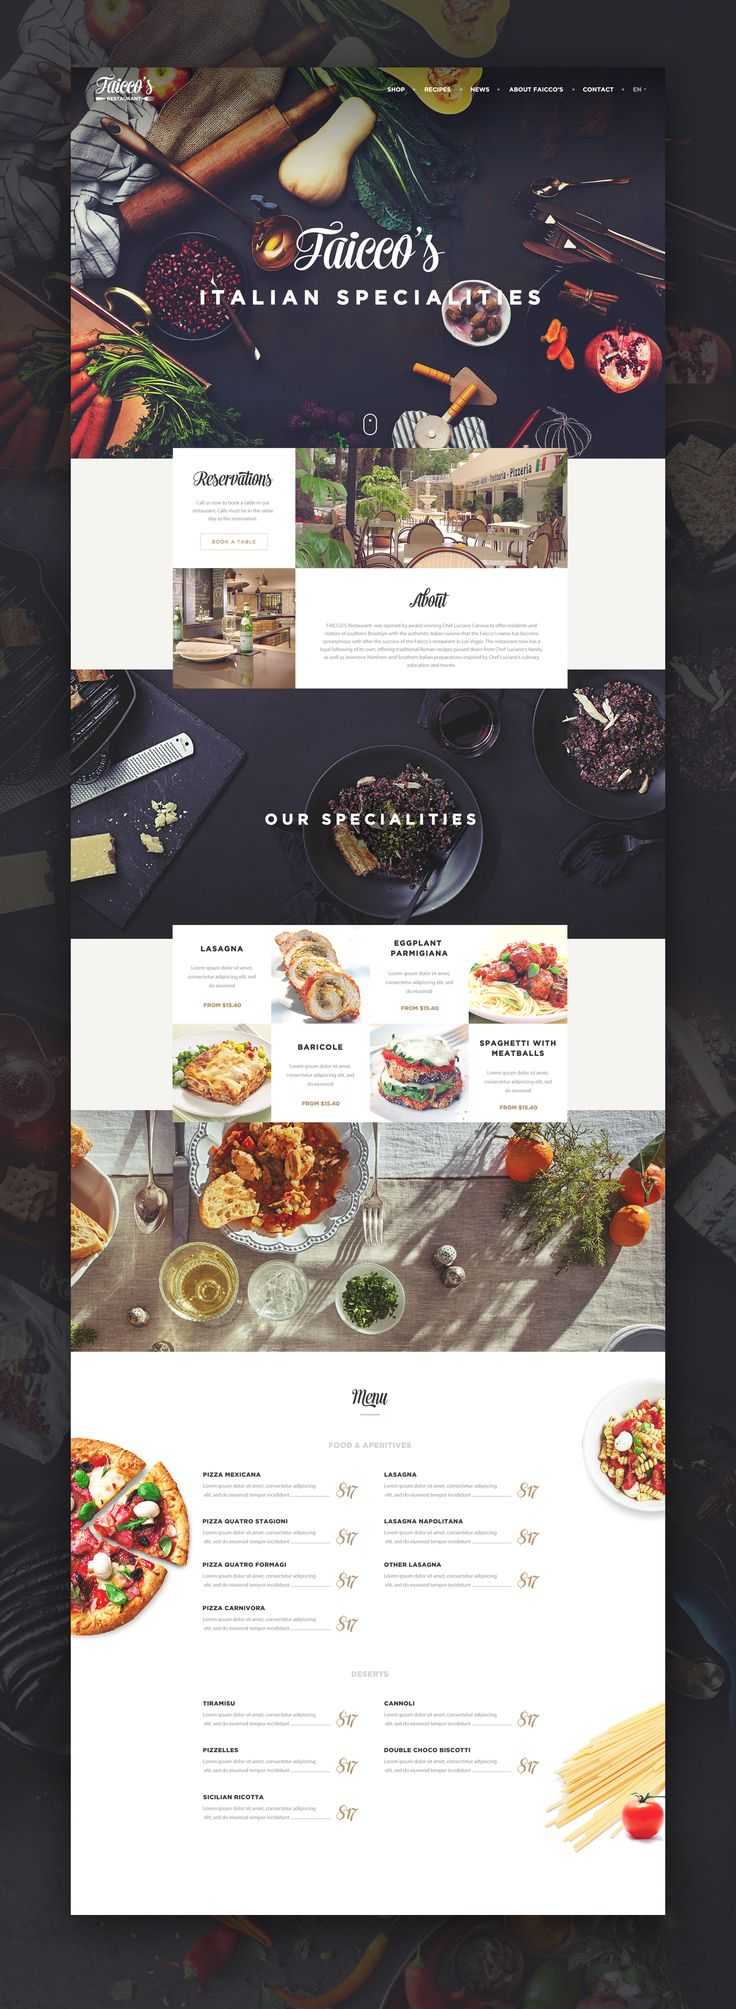 restaurant website design. #webdesign #layout